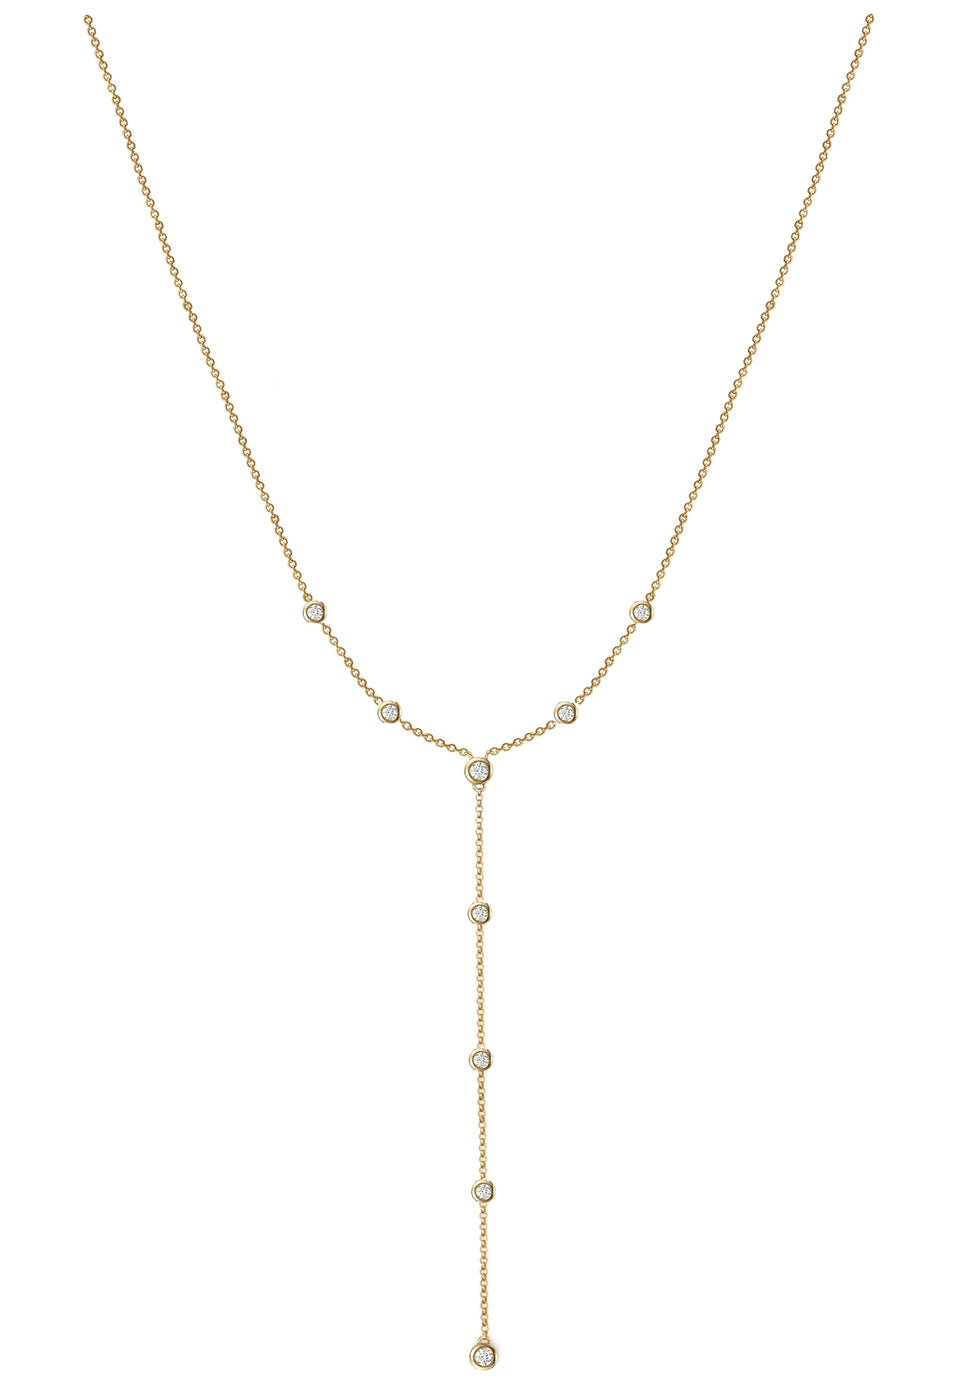 Nehita Bazel Droplet Diamond Necklace